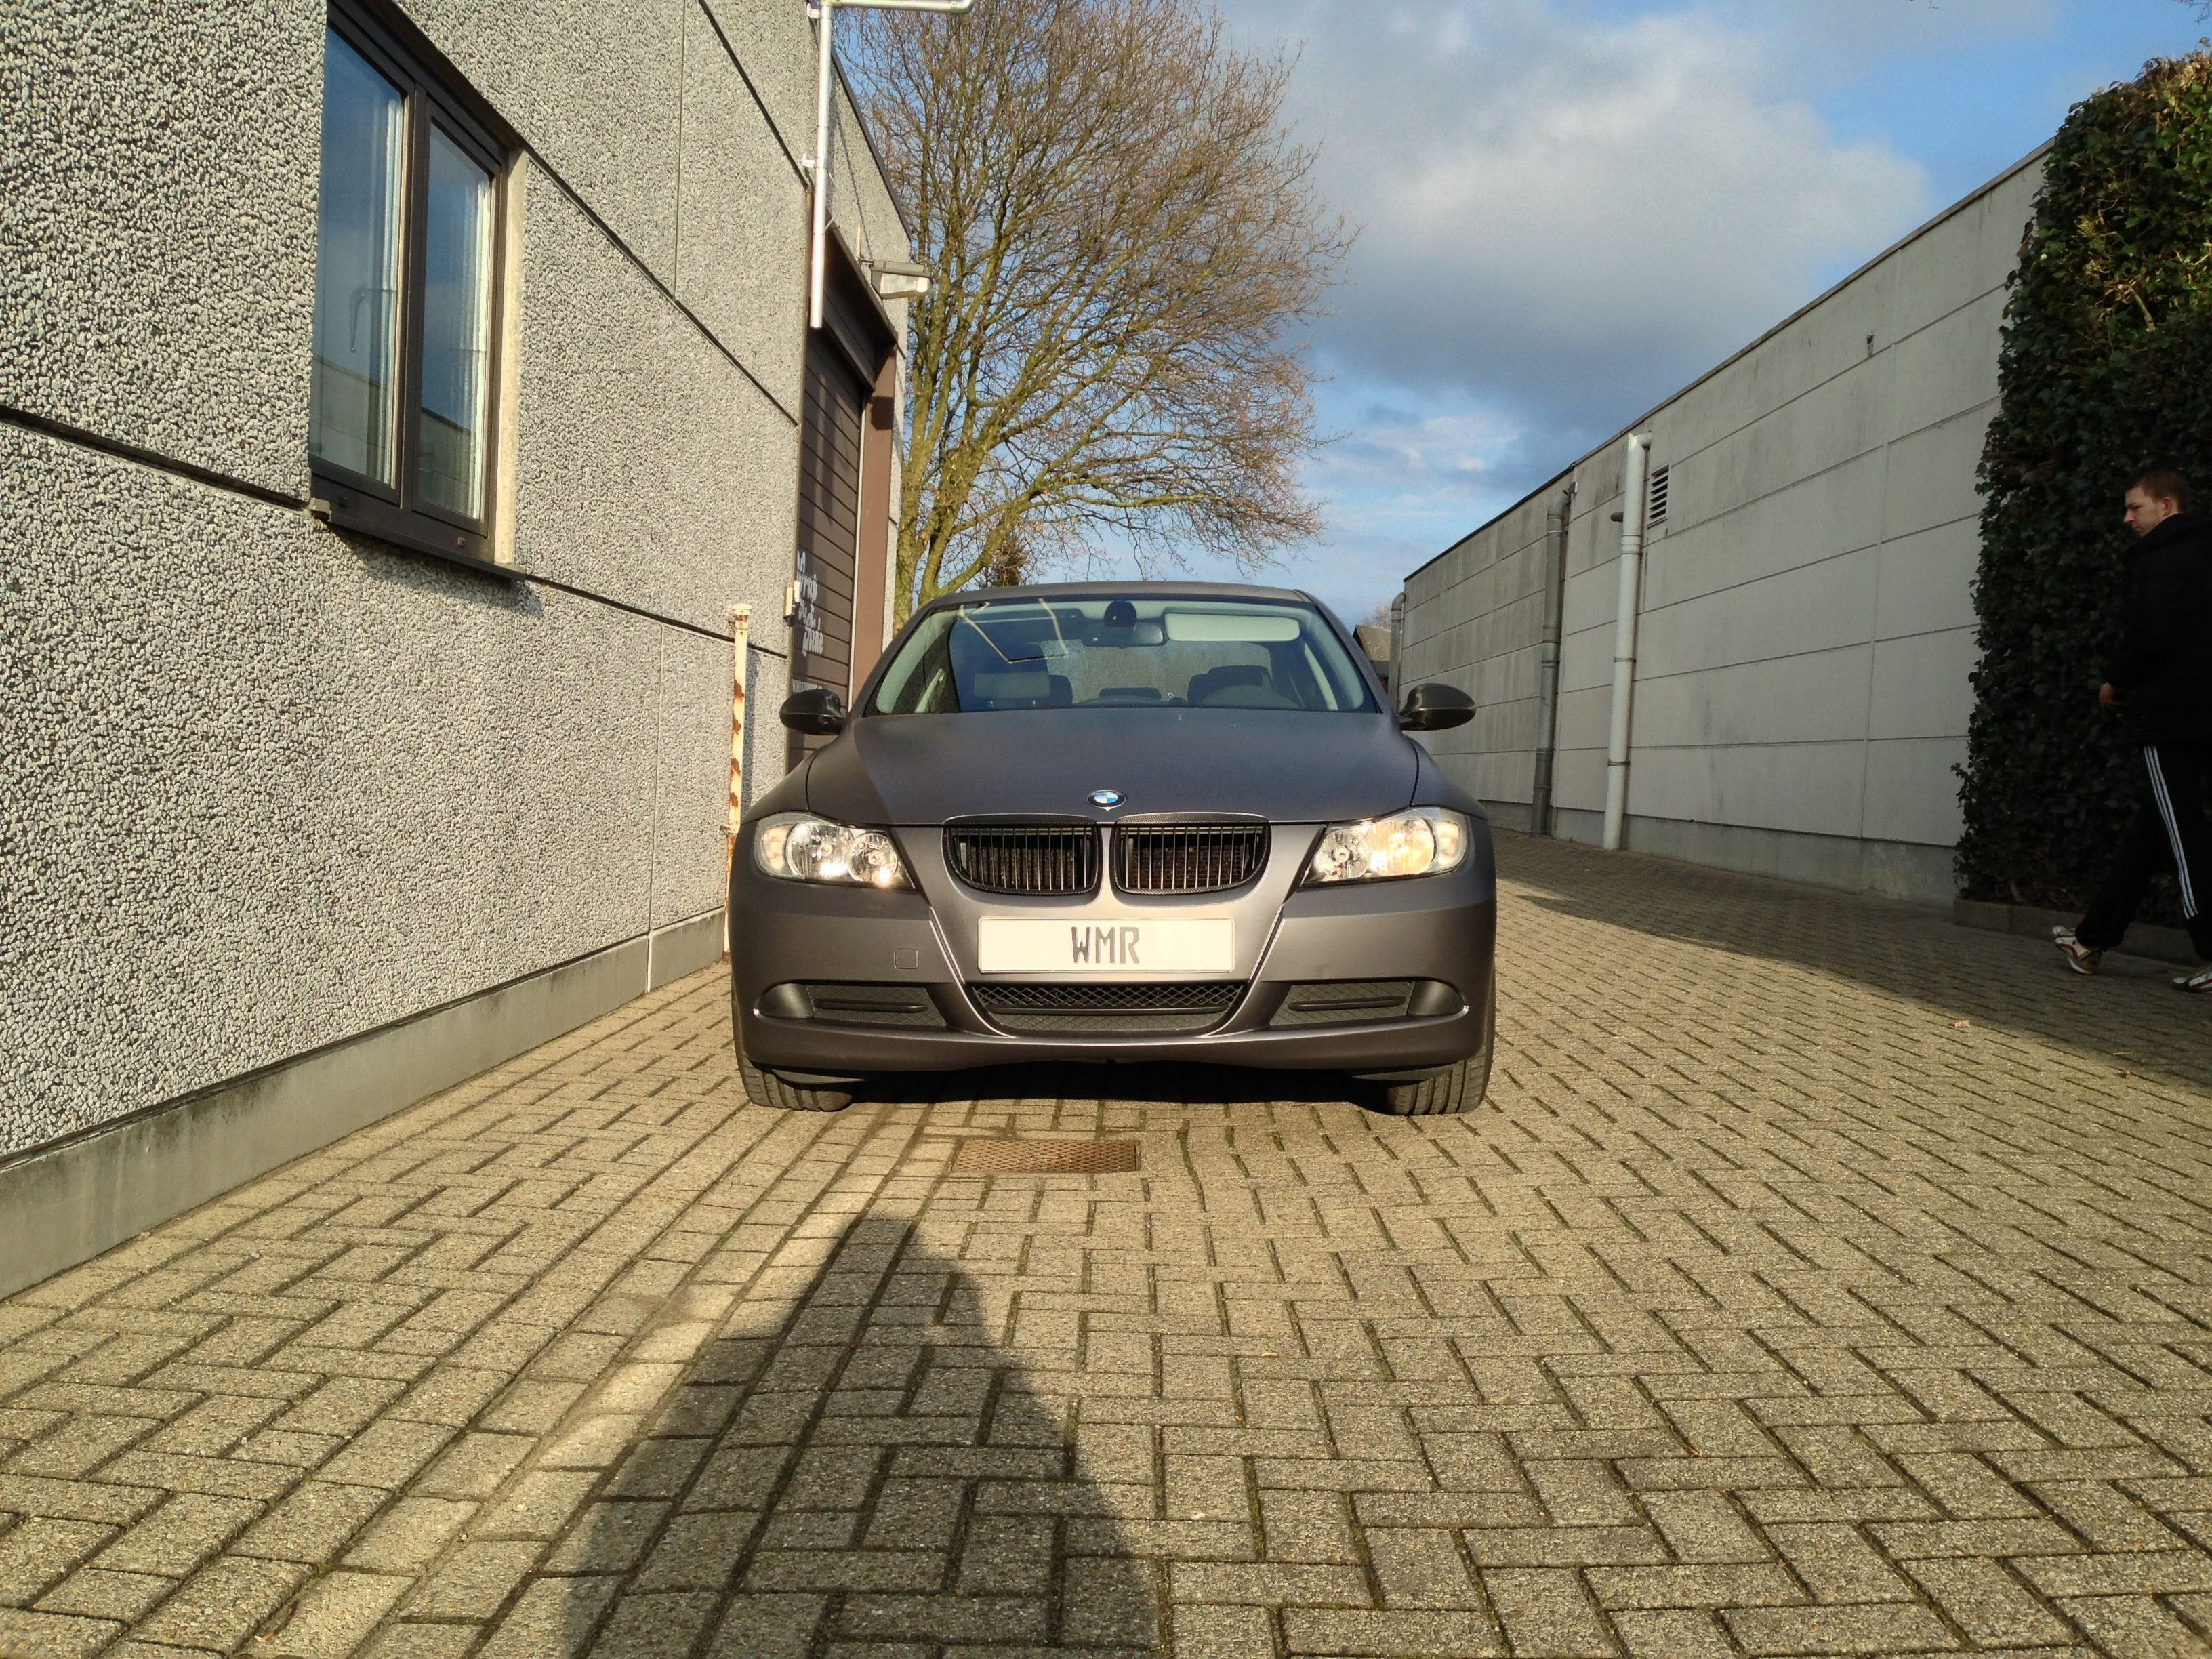 BMW E90 met Gunpowder Wrap, Carwrapping door Wrapmyride.nu Foto-nr:5375, ©2021